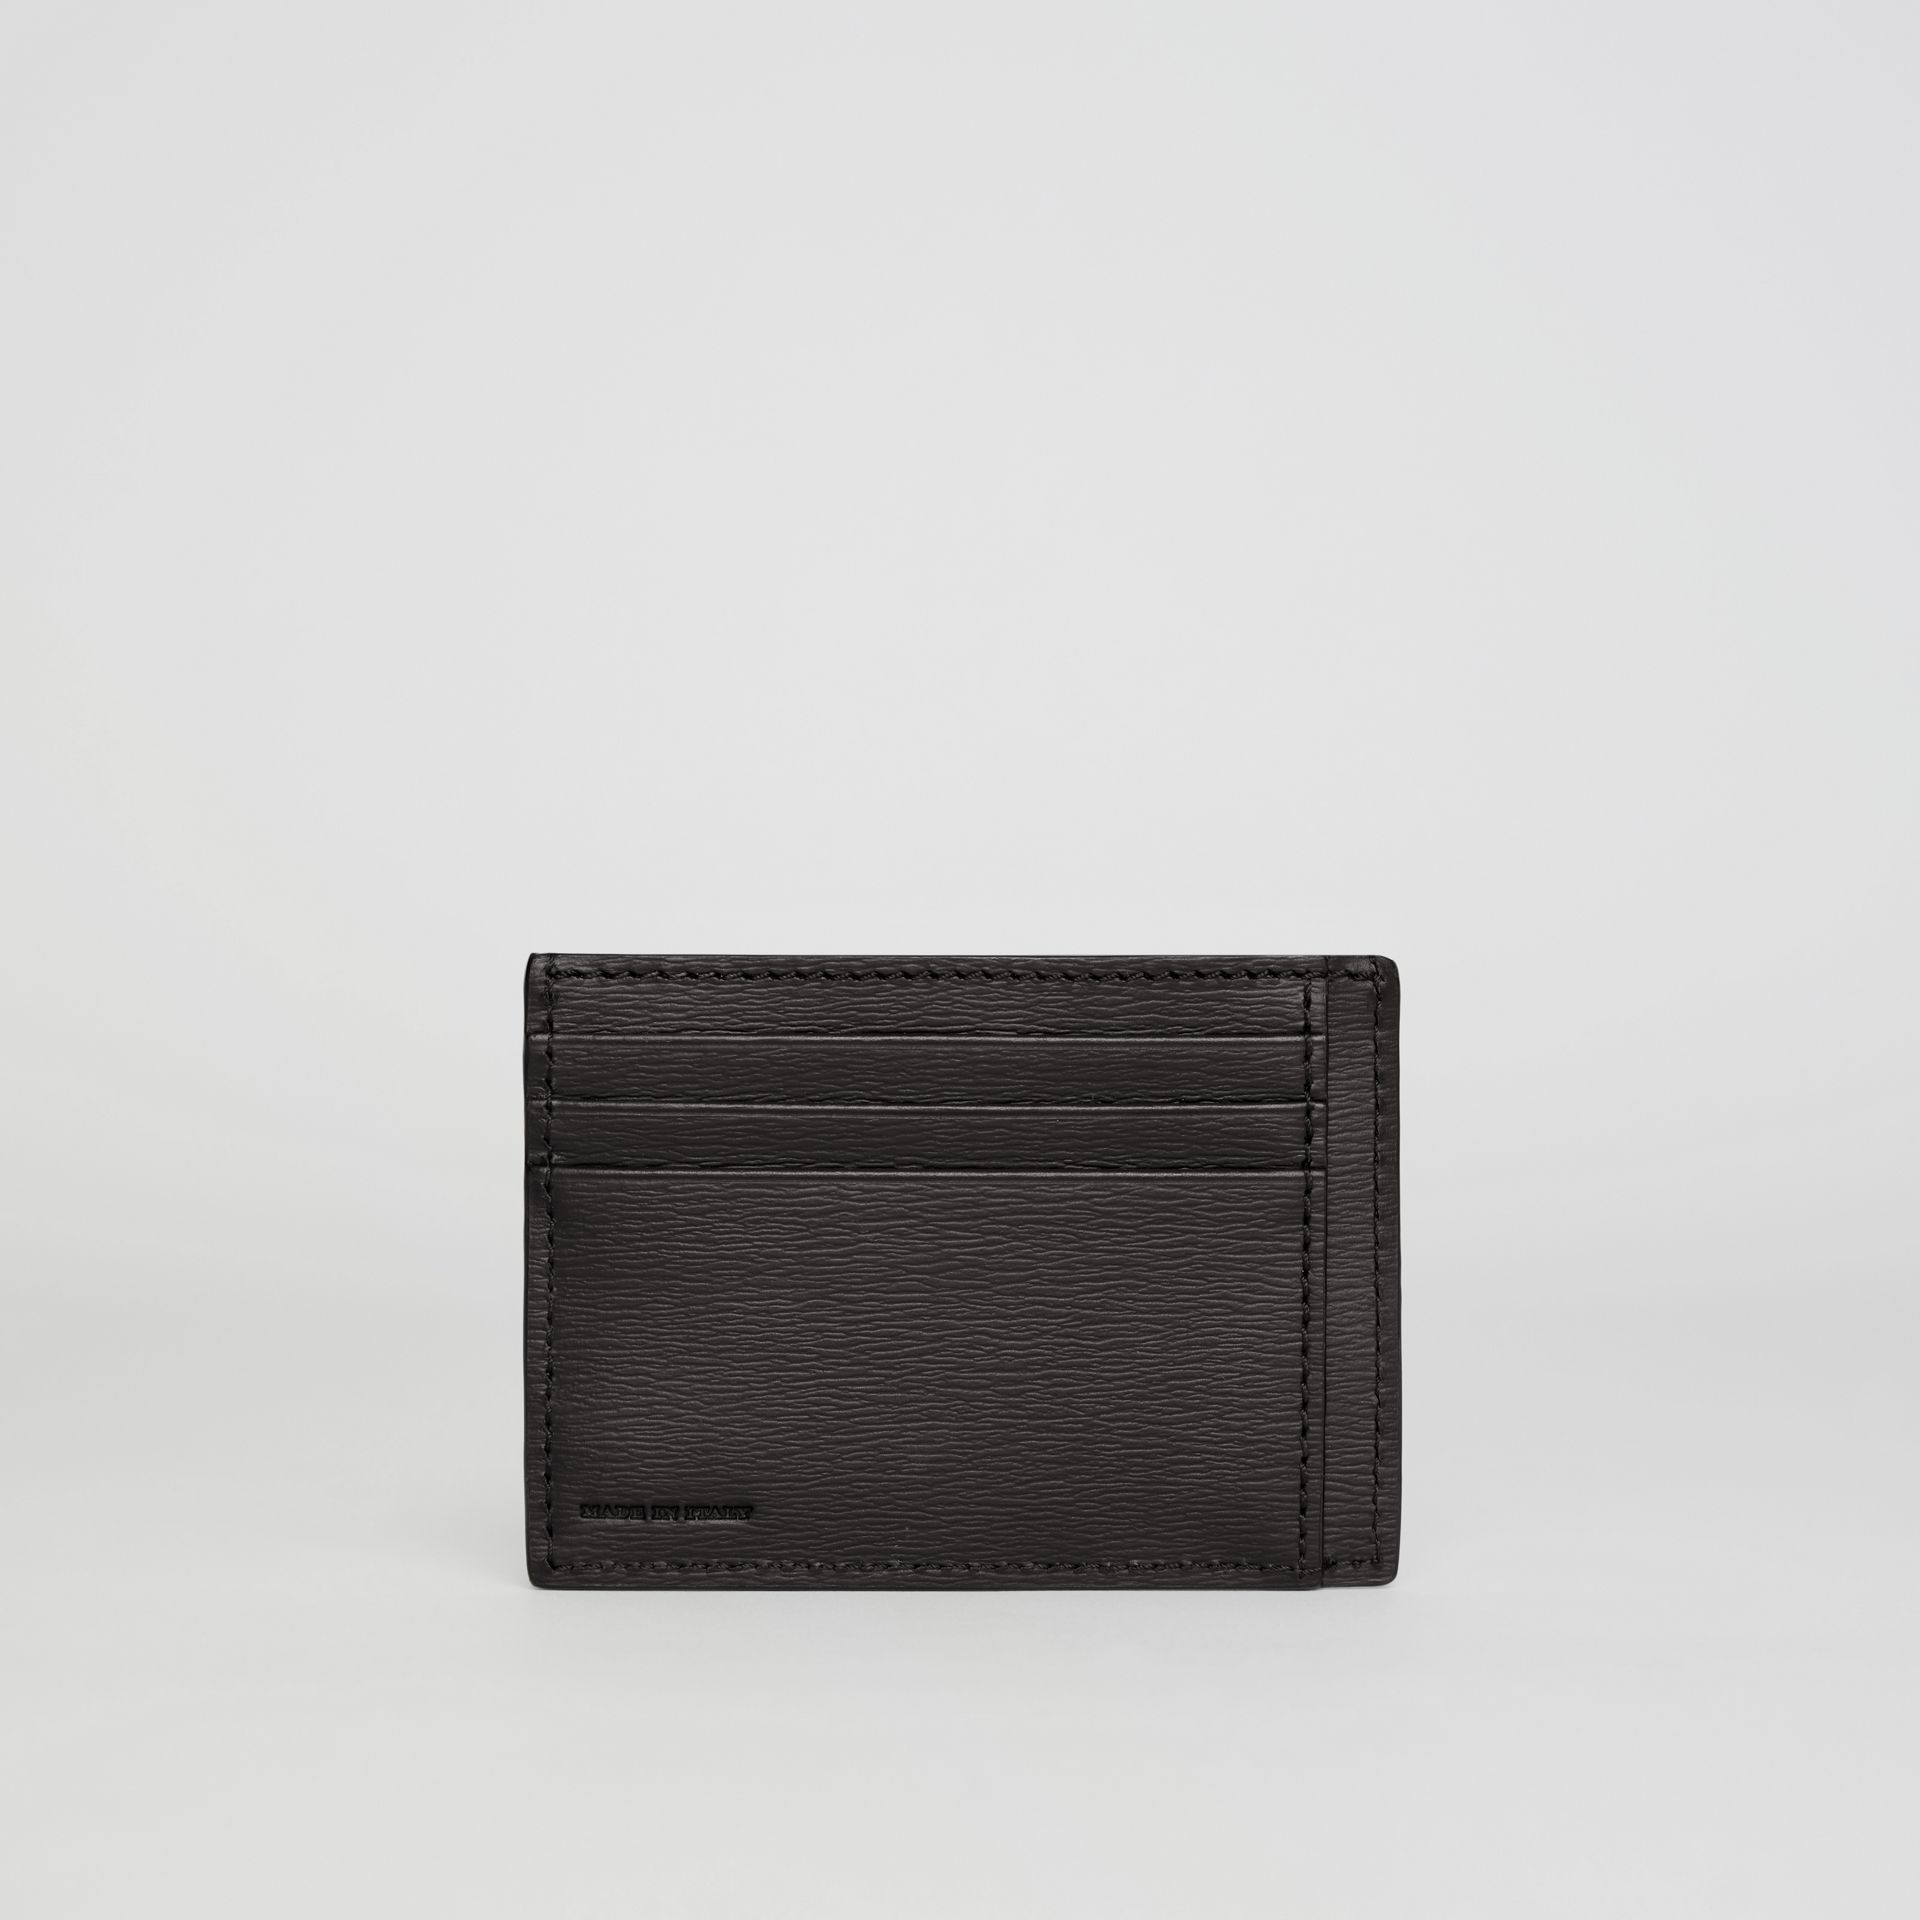 London Leather Card Case in Black - Men | Burberry United Kingdom - gallery image 2